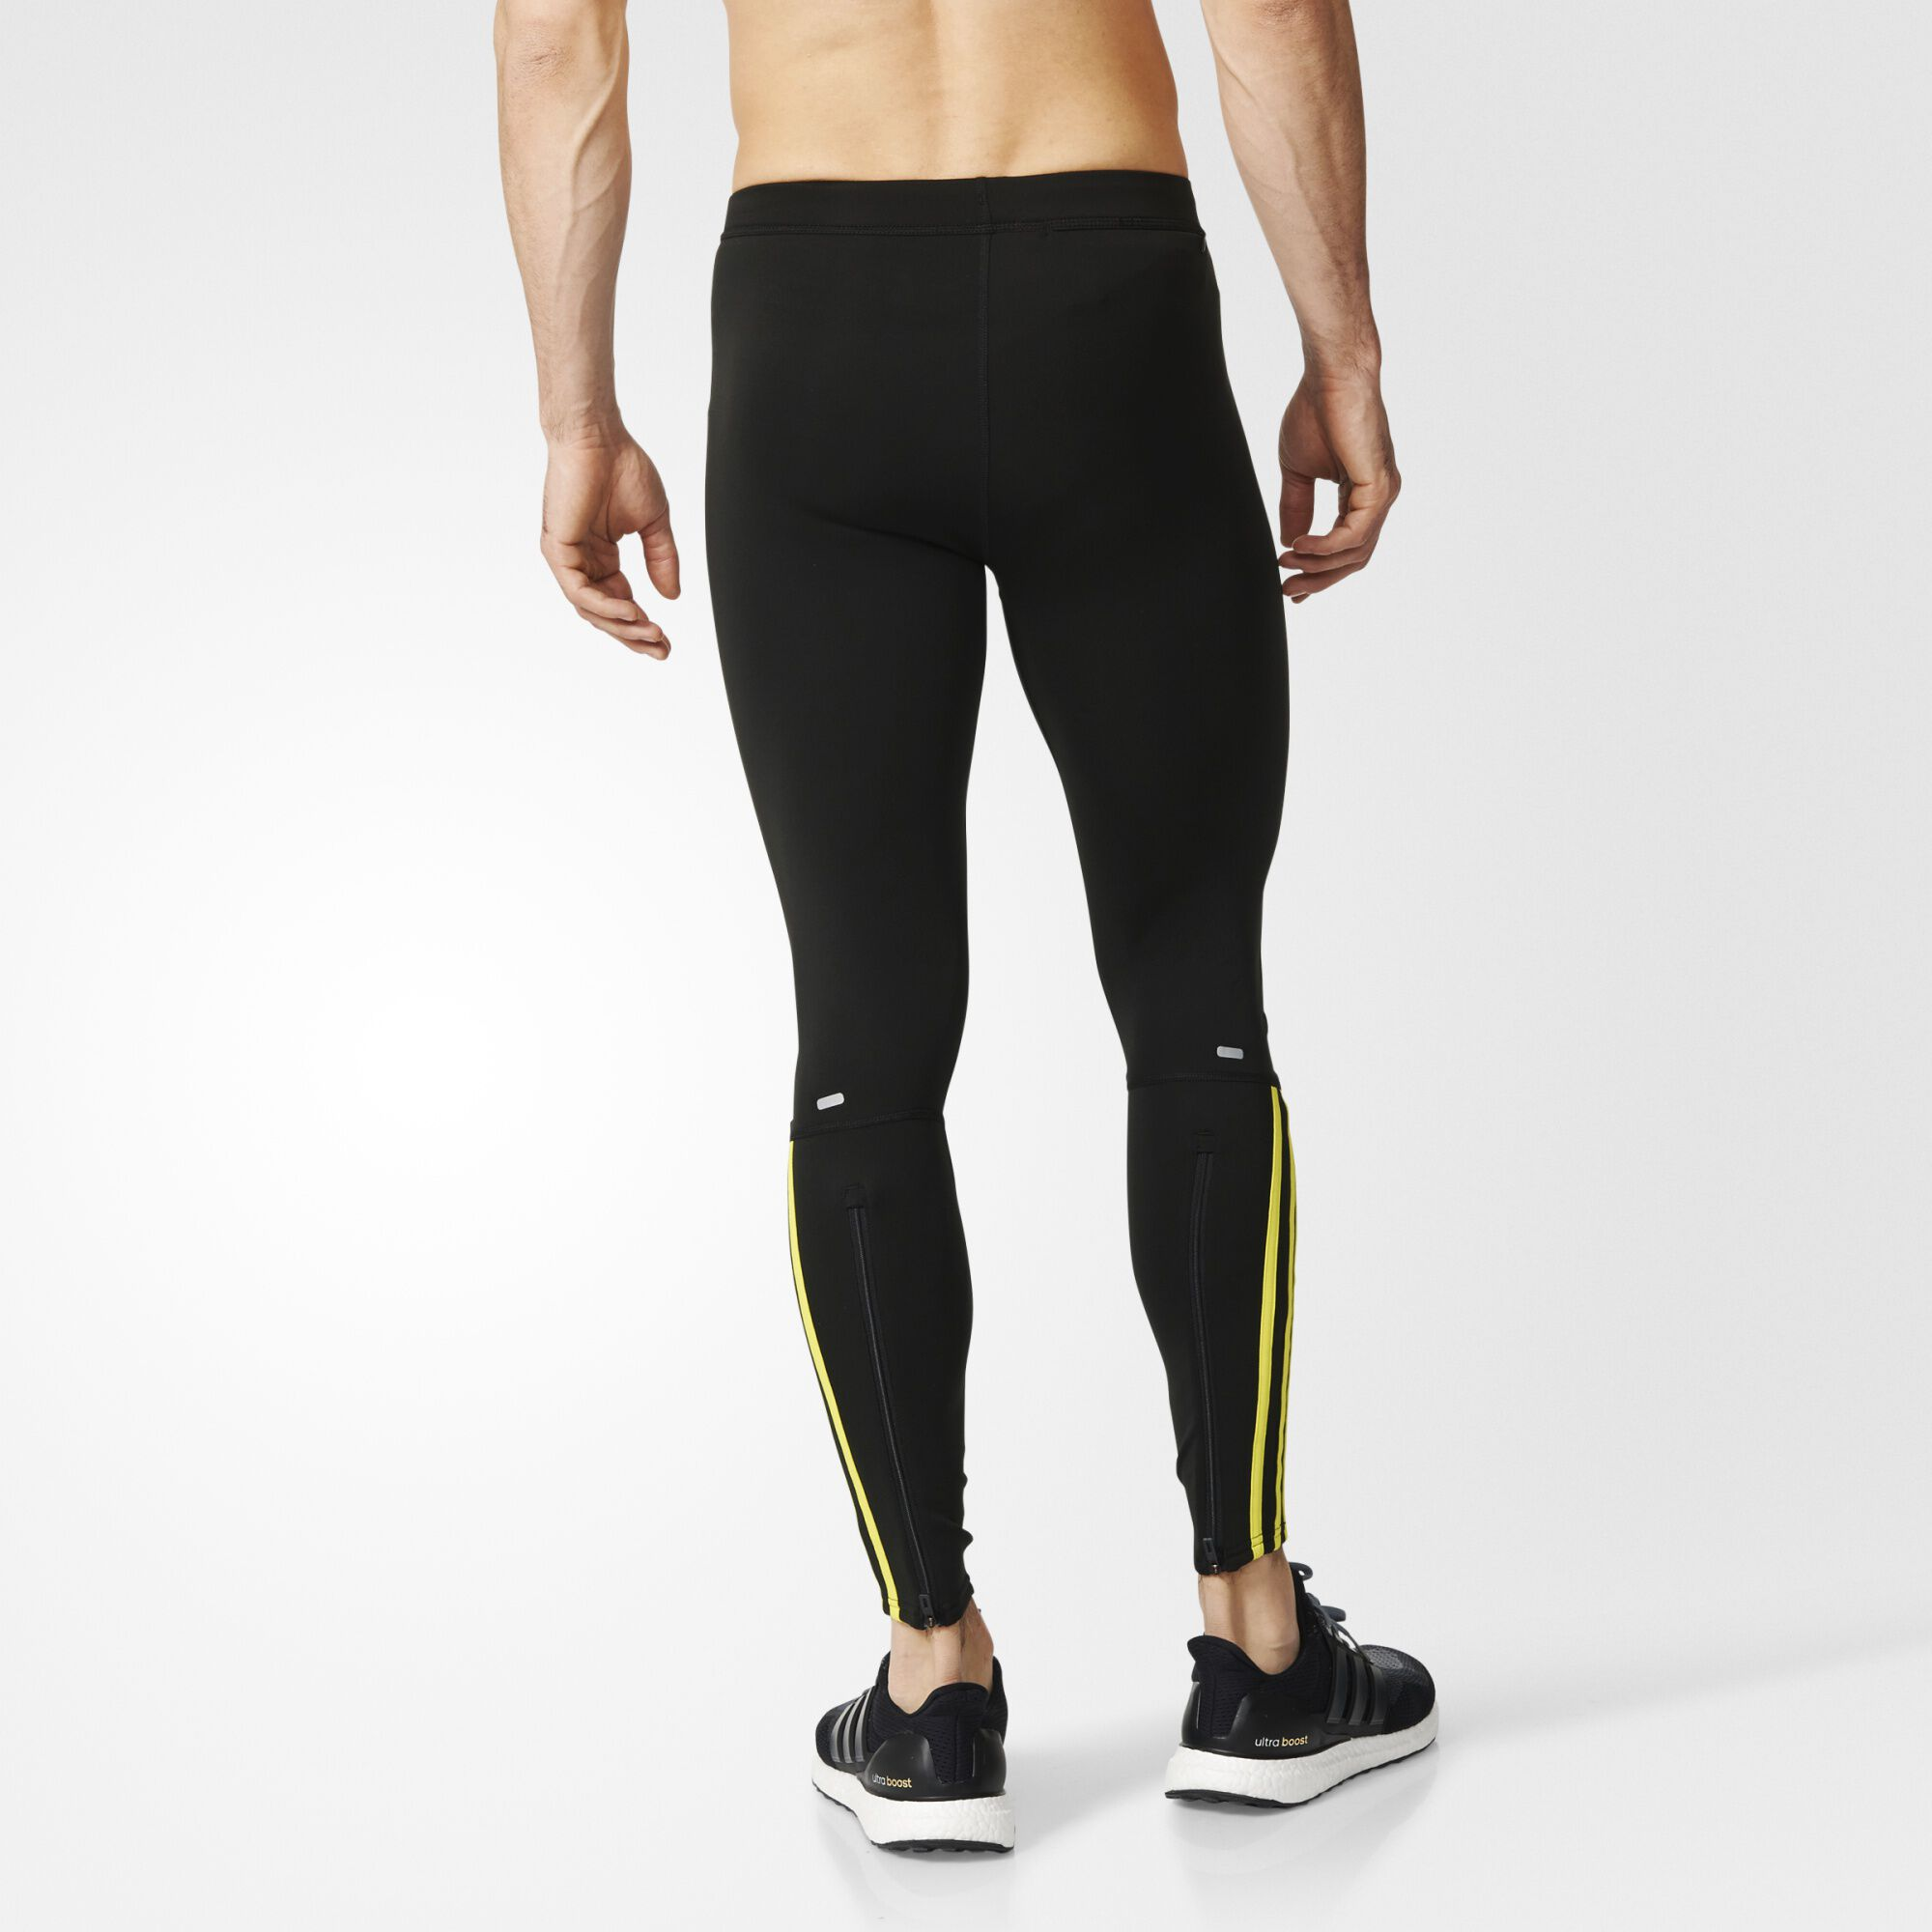 outlet adidas running tights